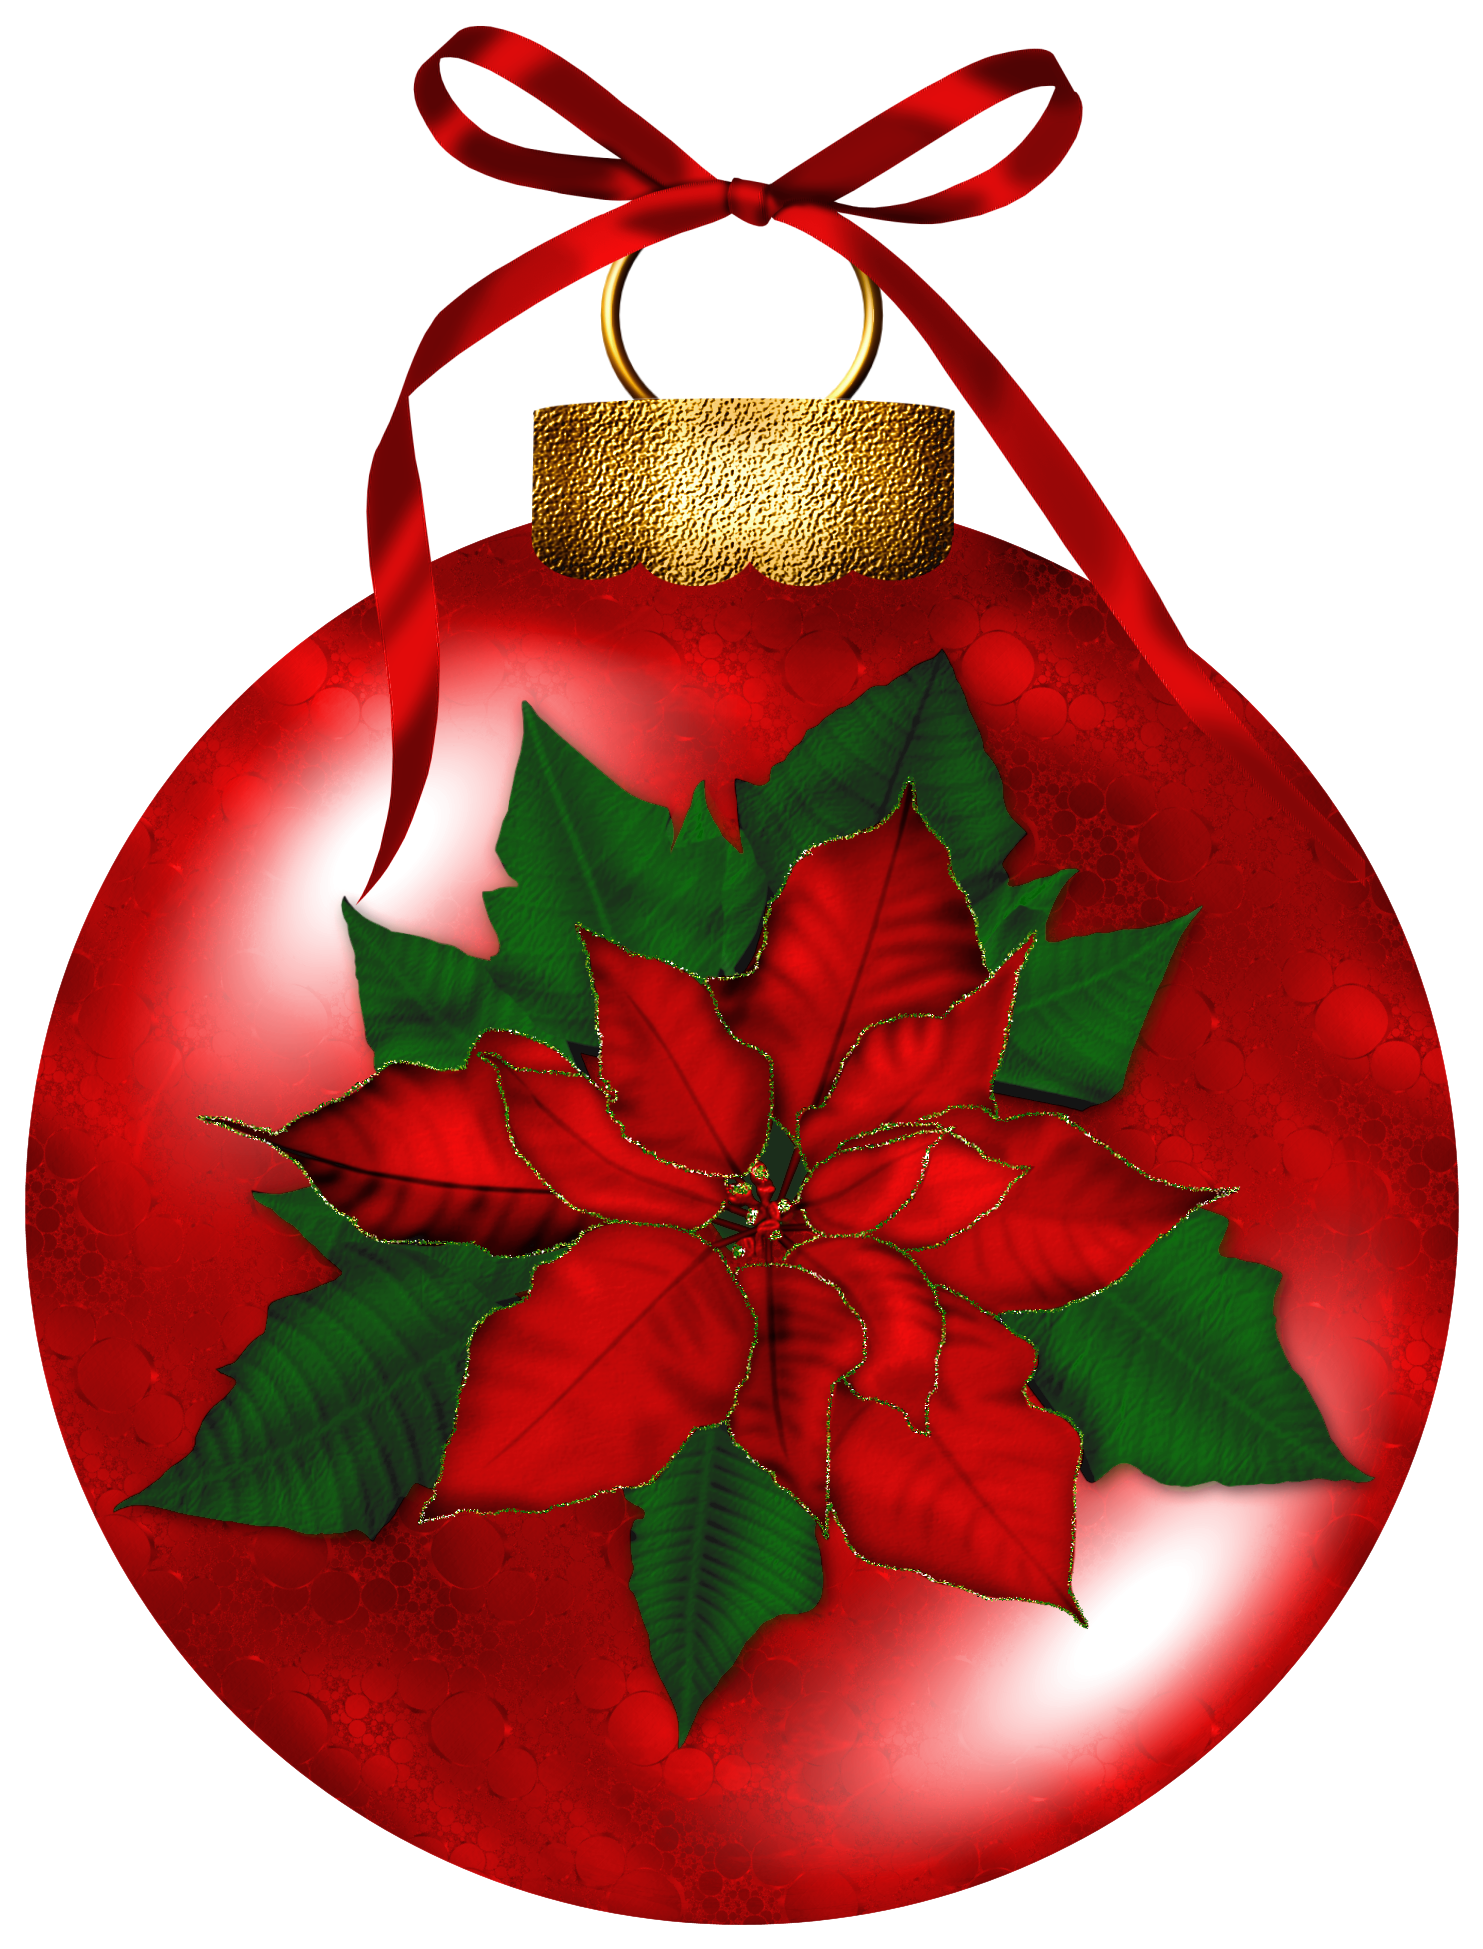 Poinsettia Free Cliparts That You Can Download To You Computer And